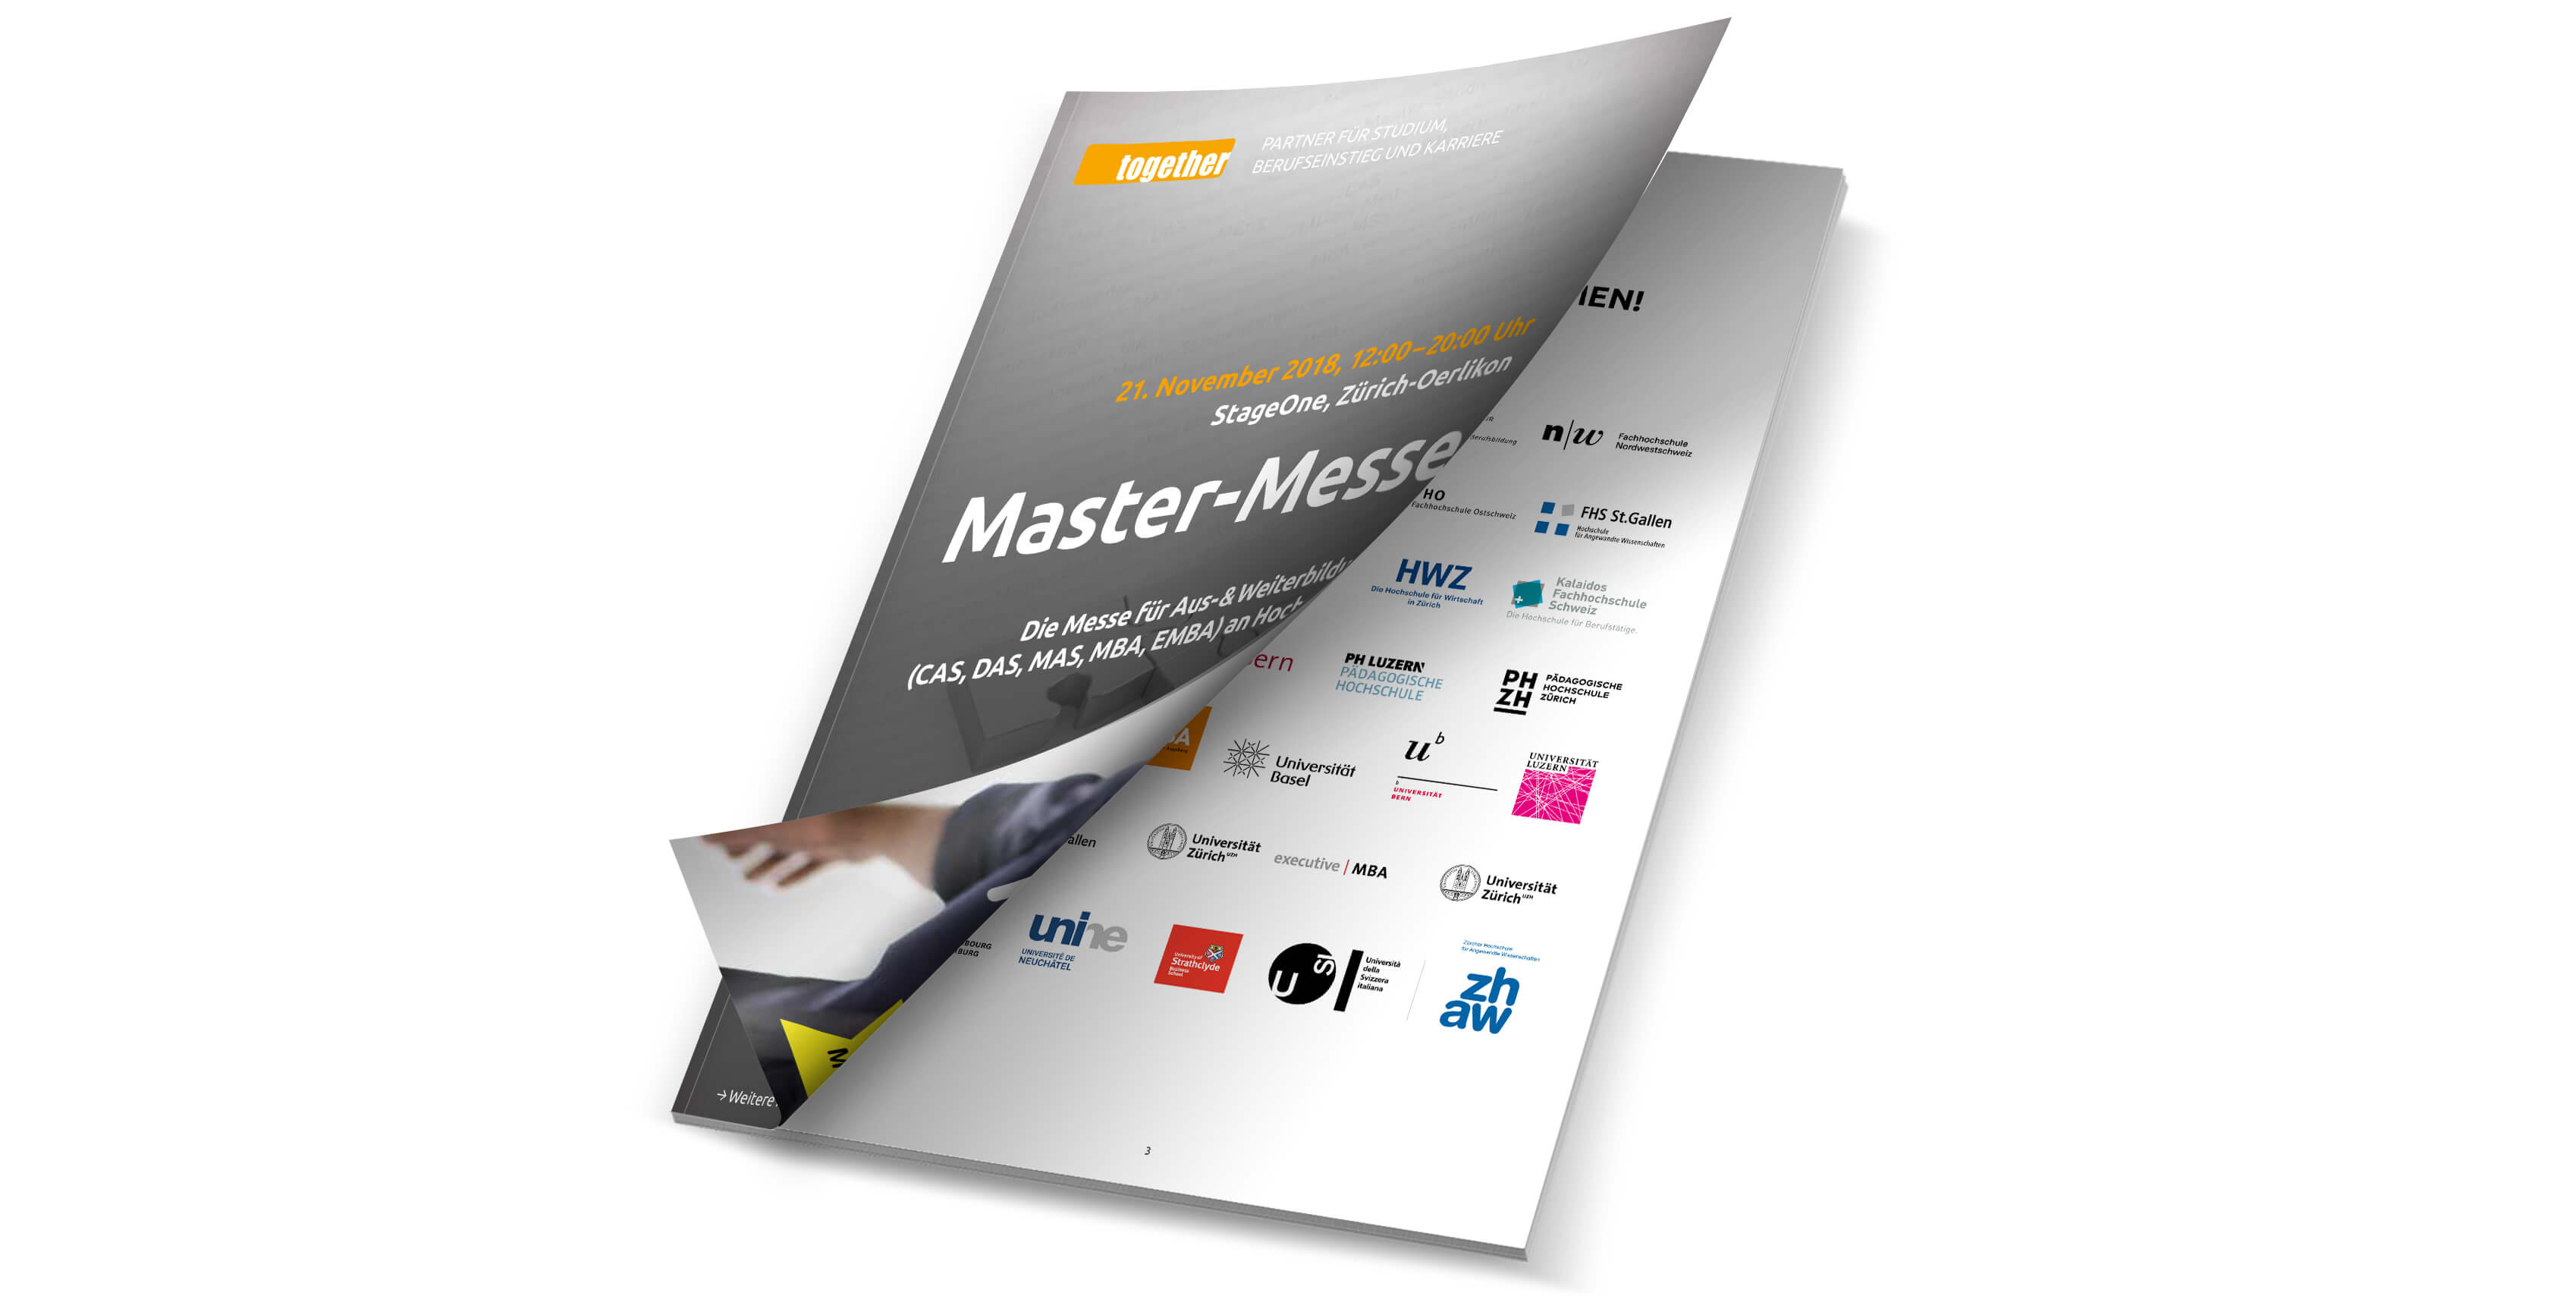 Messe guide master messe